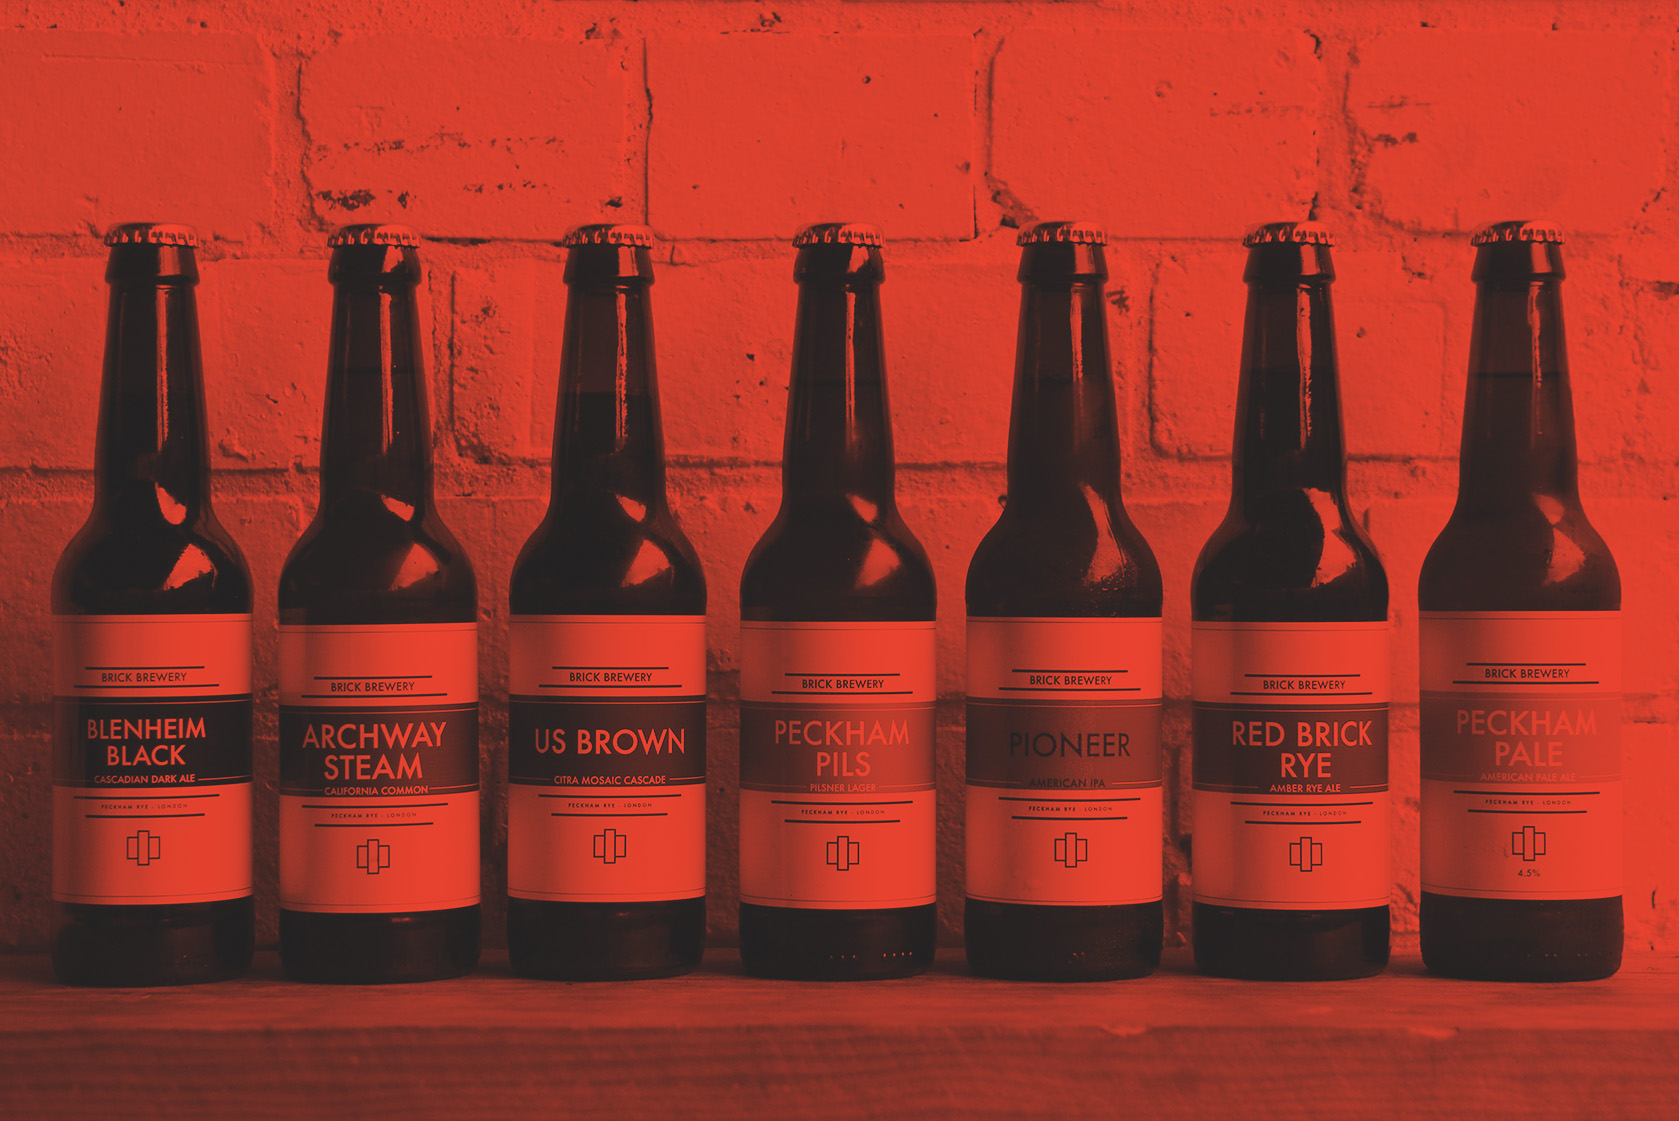 Brick Brewery's line up of their bottled beers